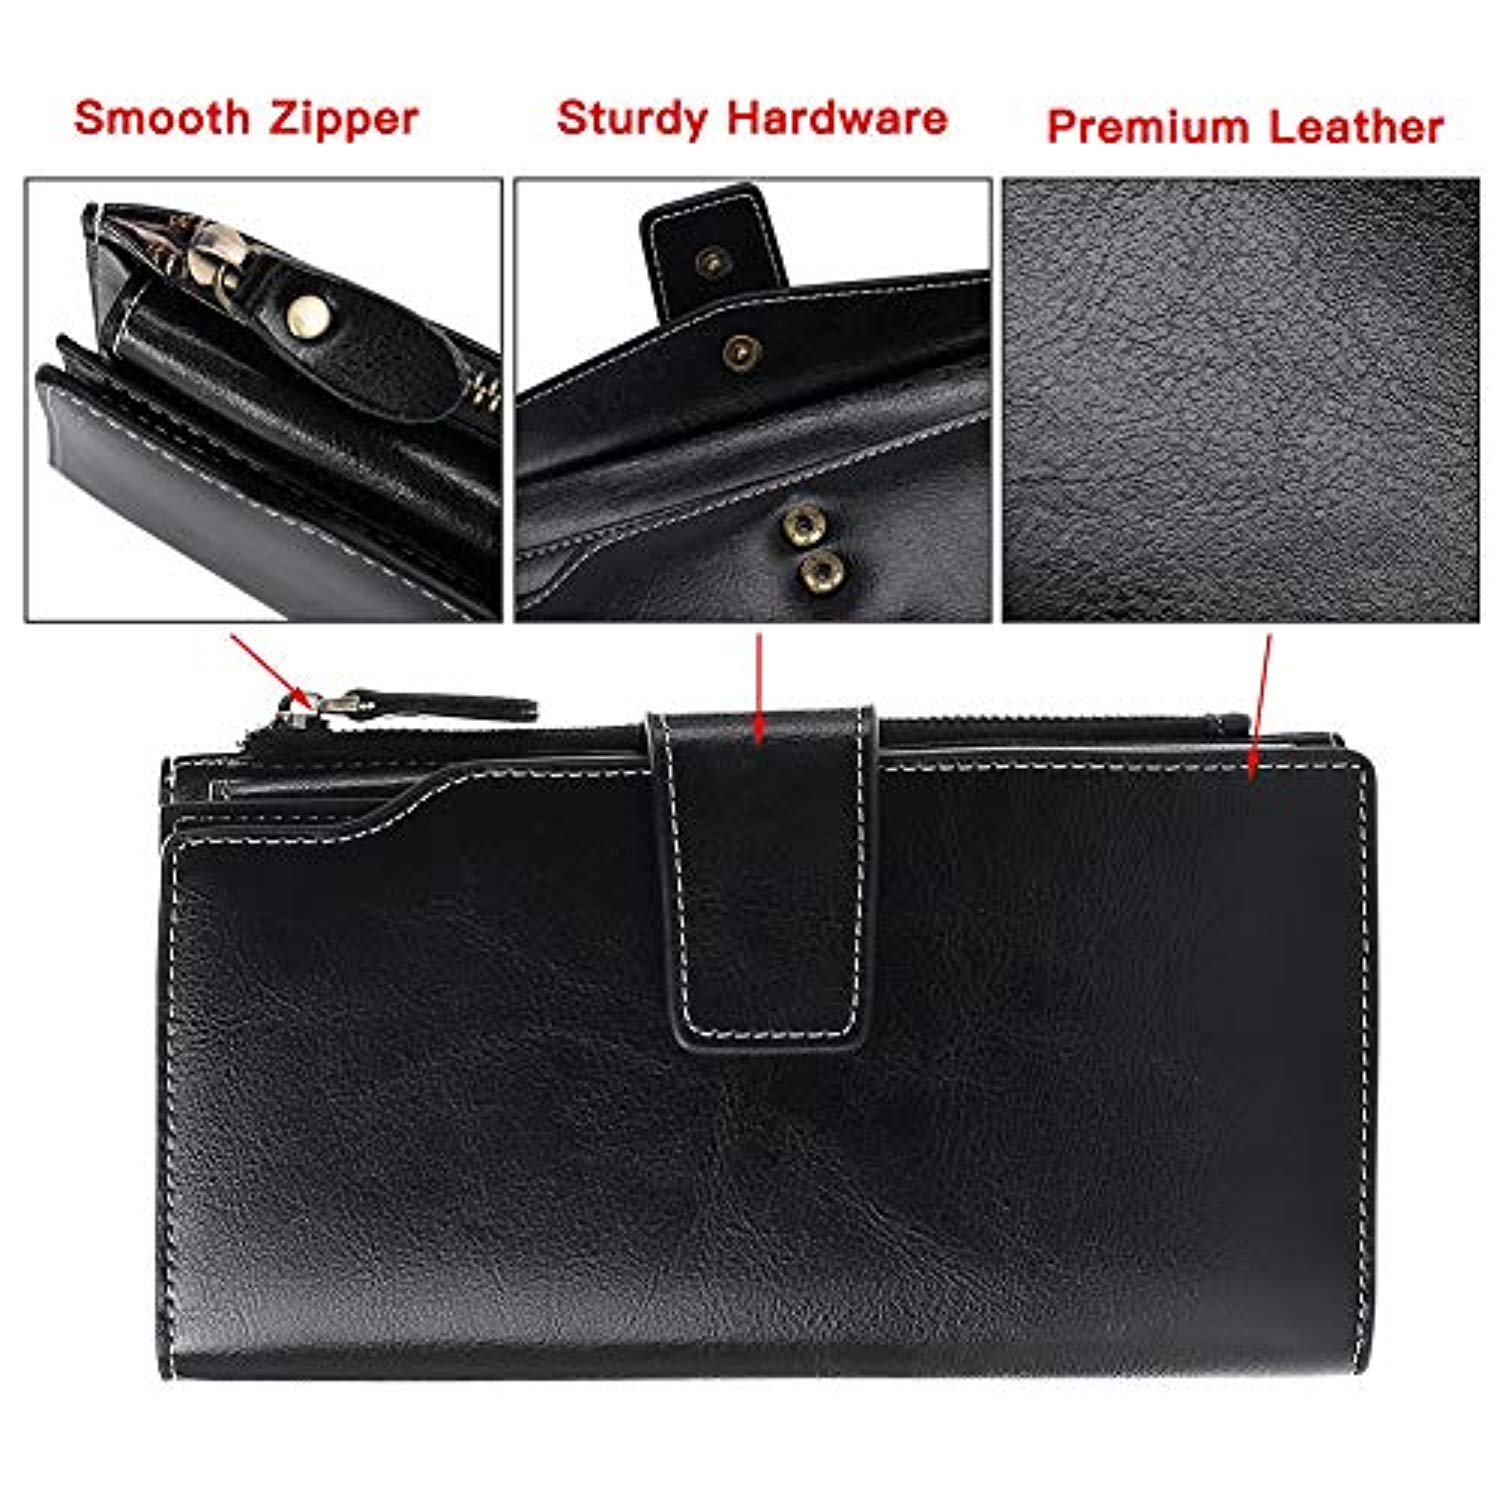 be9c67569912 Elegant 24 20 cc Slots Womens RFID Wallets Large Capacity Leather Long  Trifold Clutch Purse